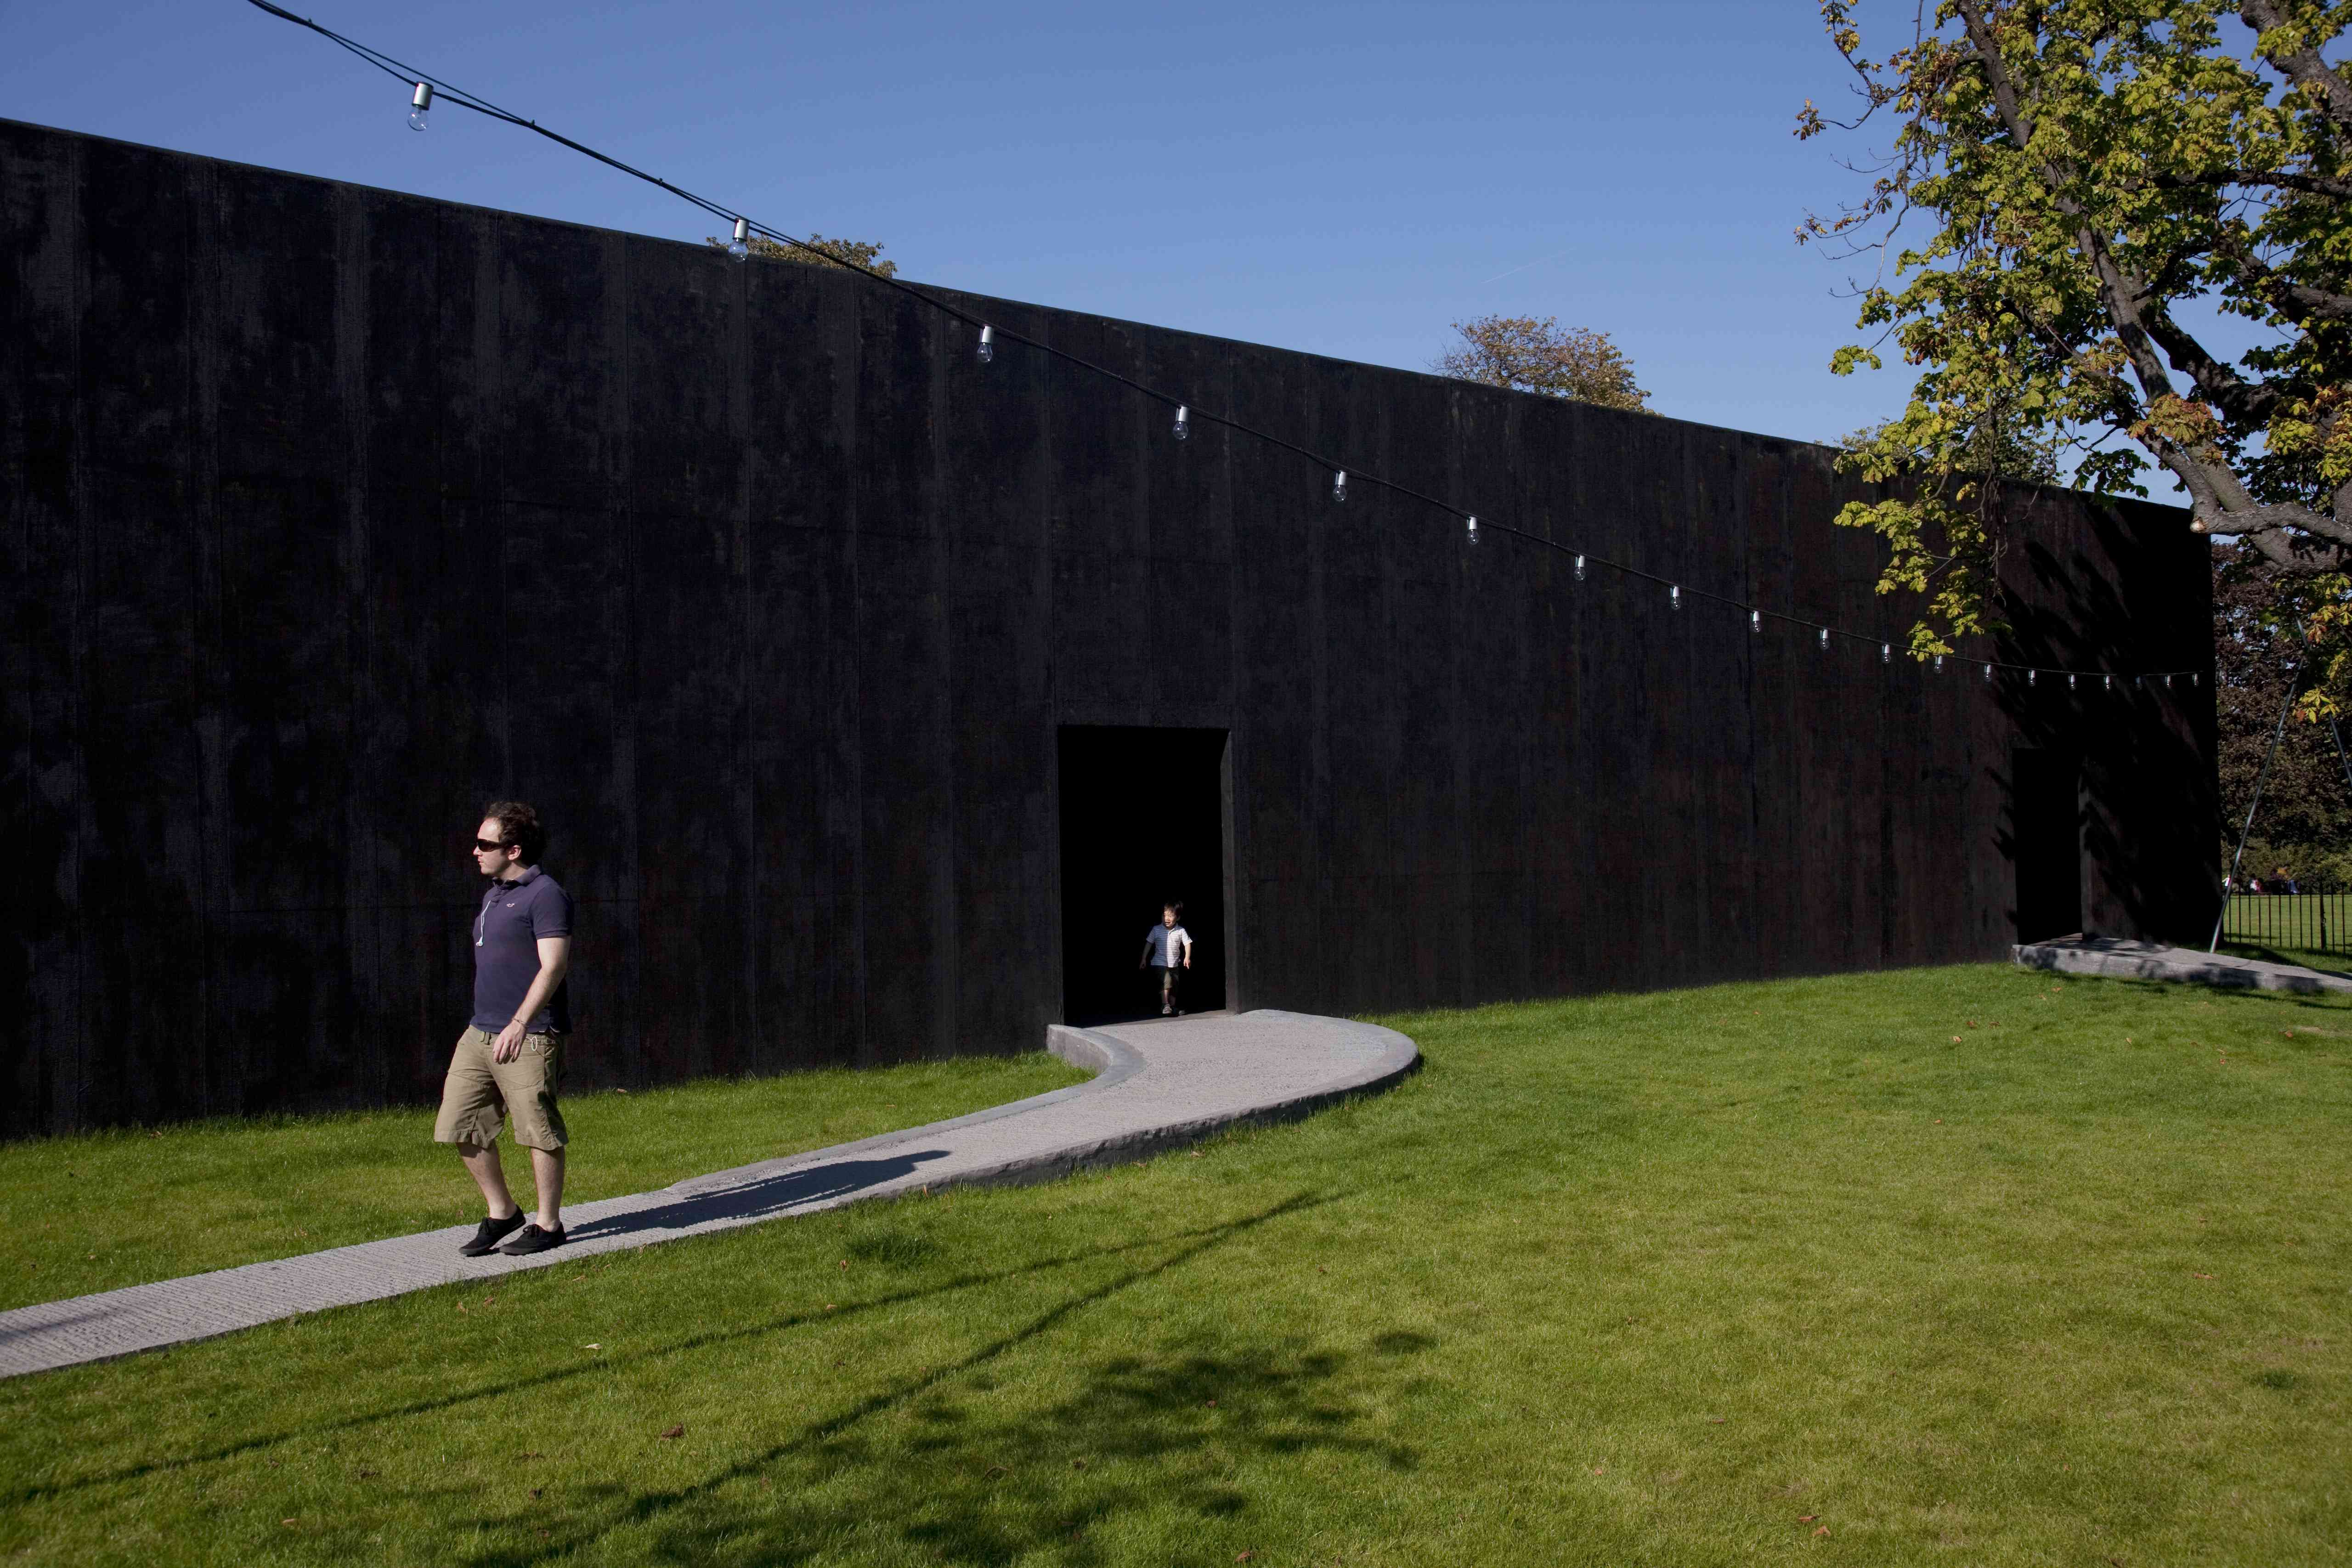 The Serpentine Gallery Pavilion 2011, designed by Peter Zumthor